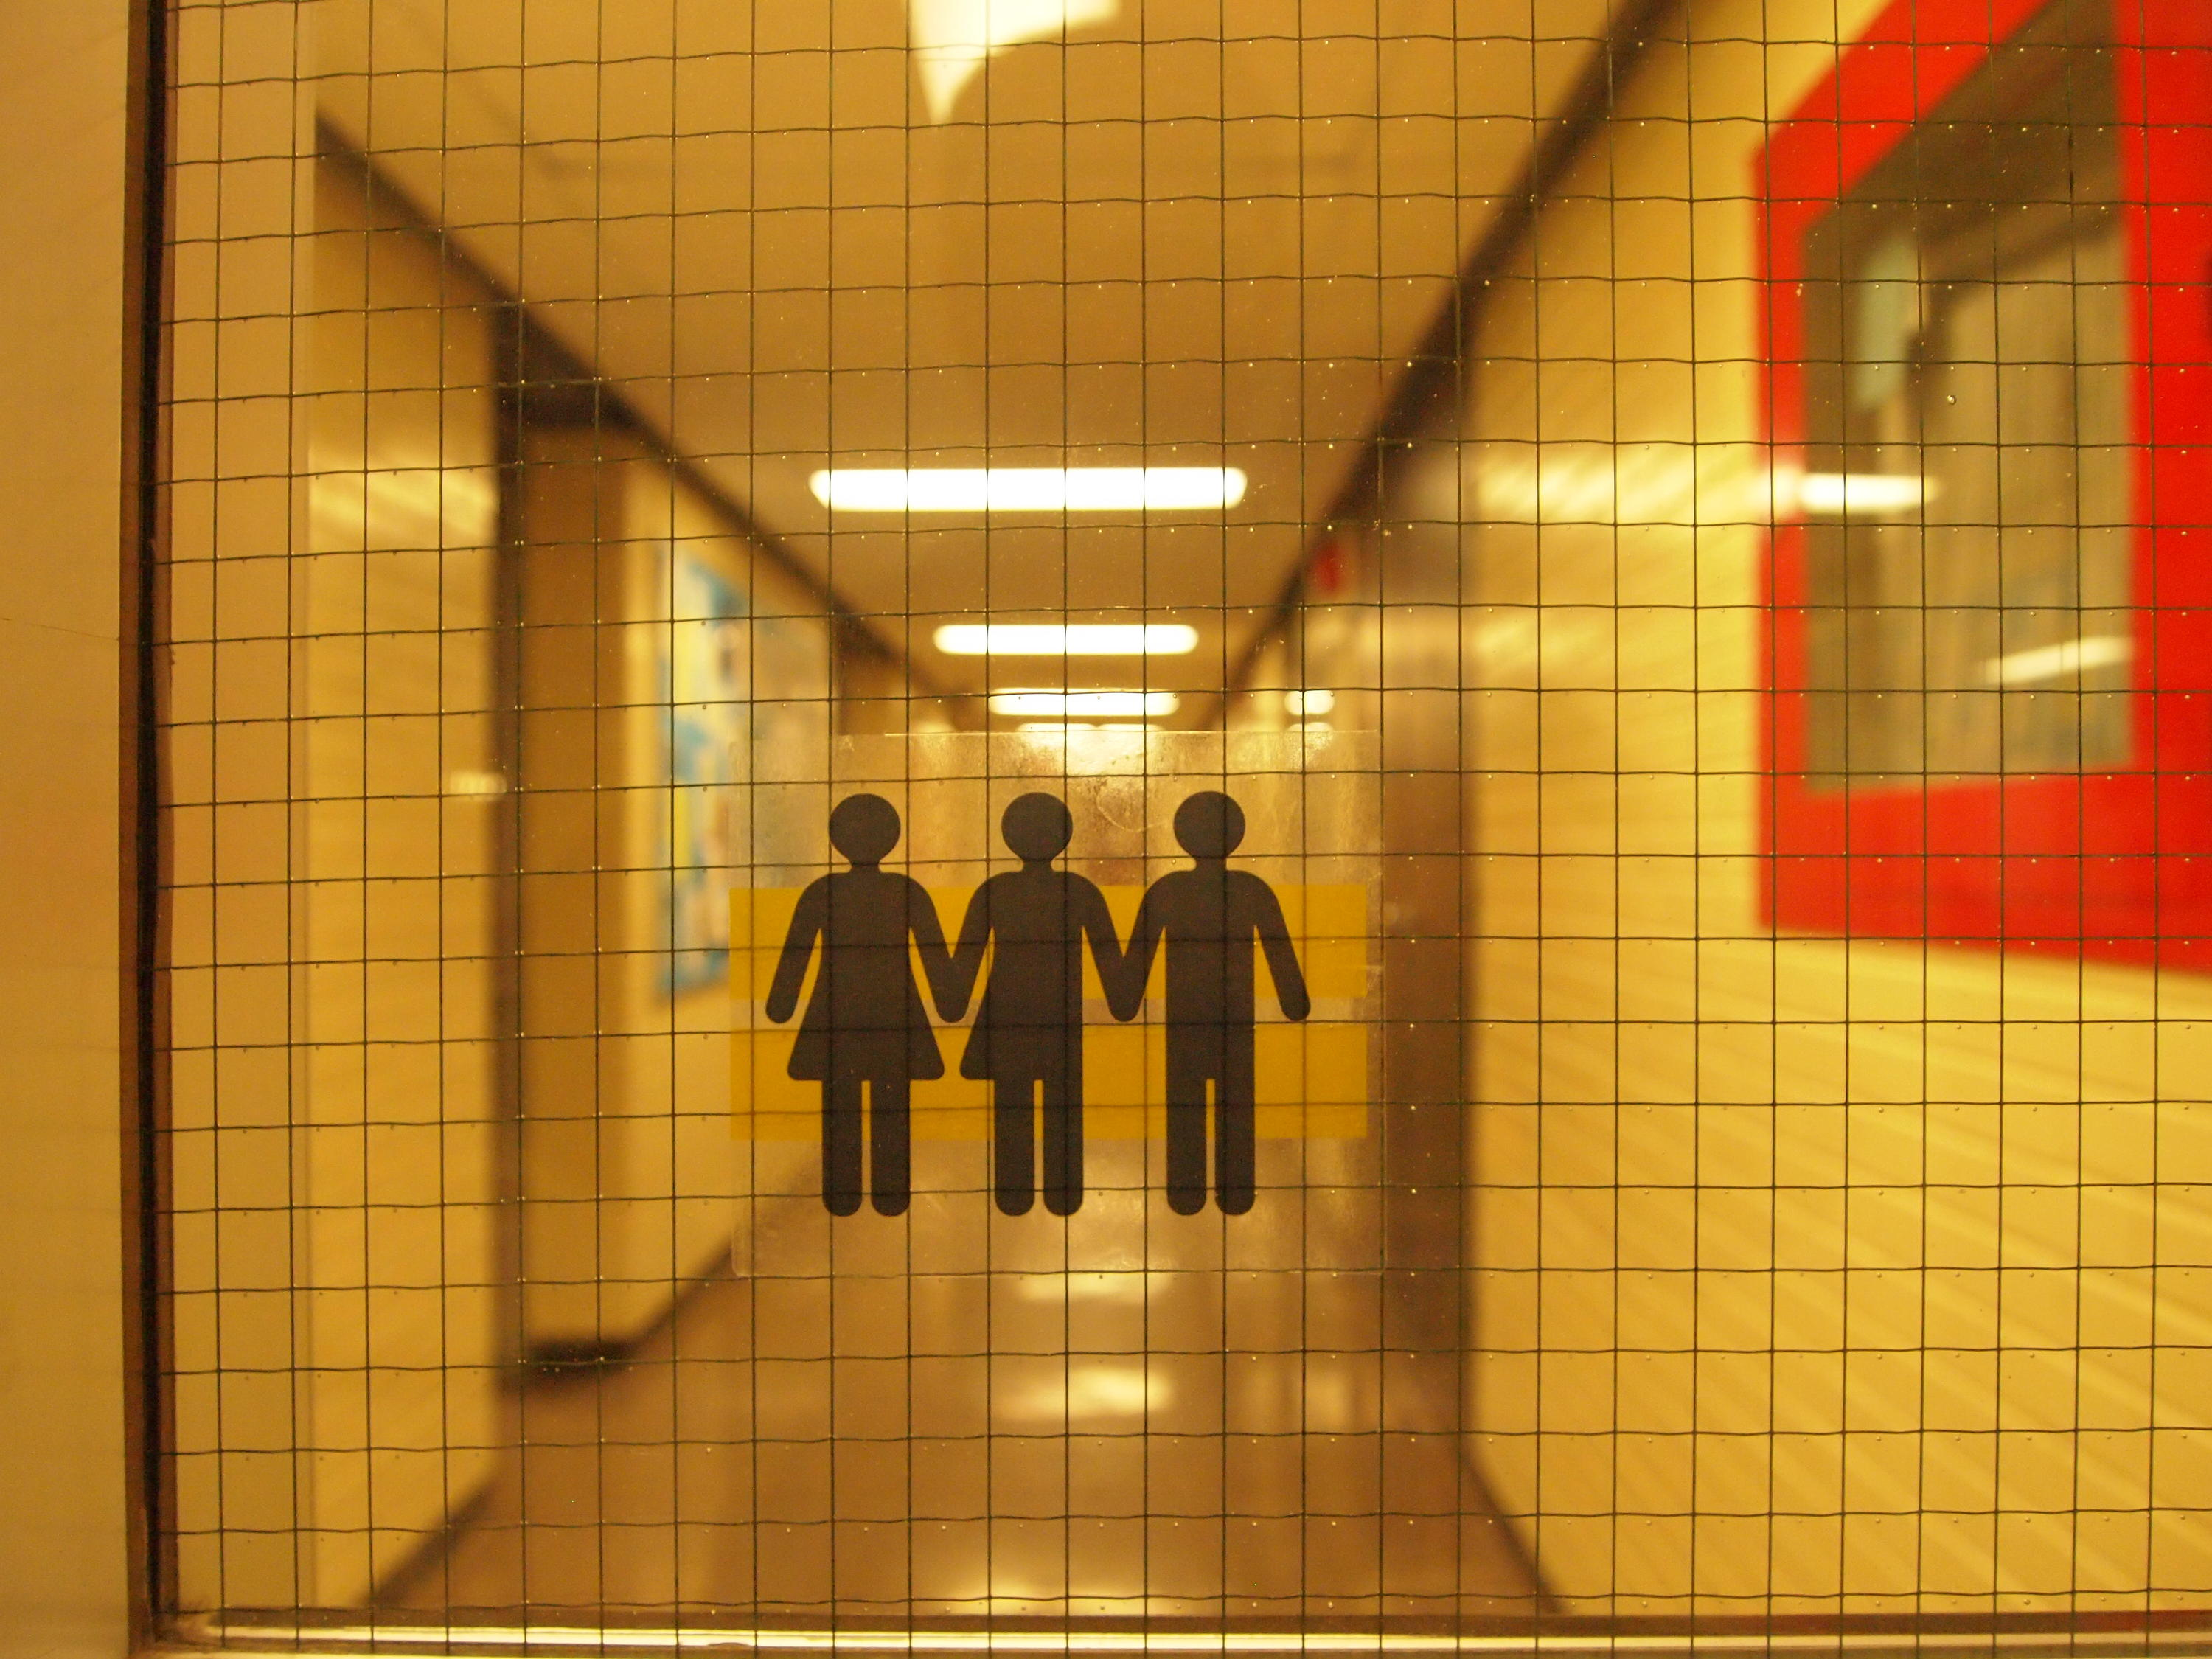 symbols for three or more genders on sticker on glass door